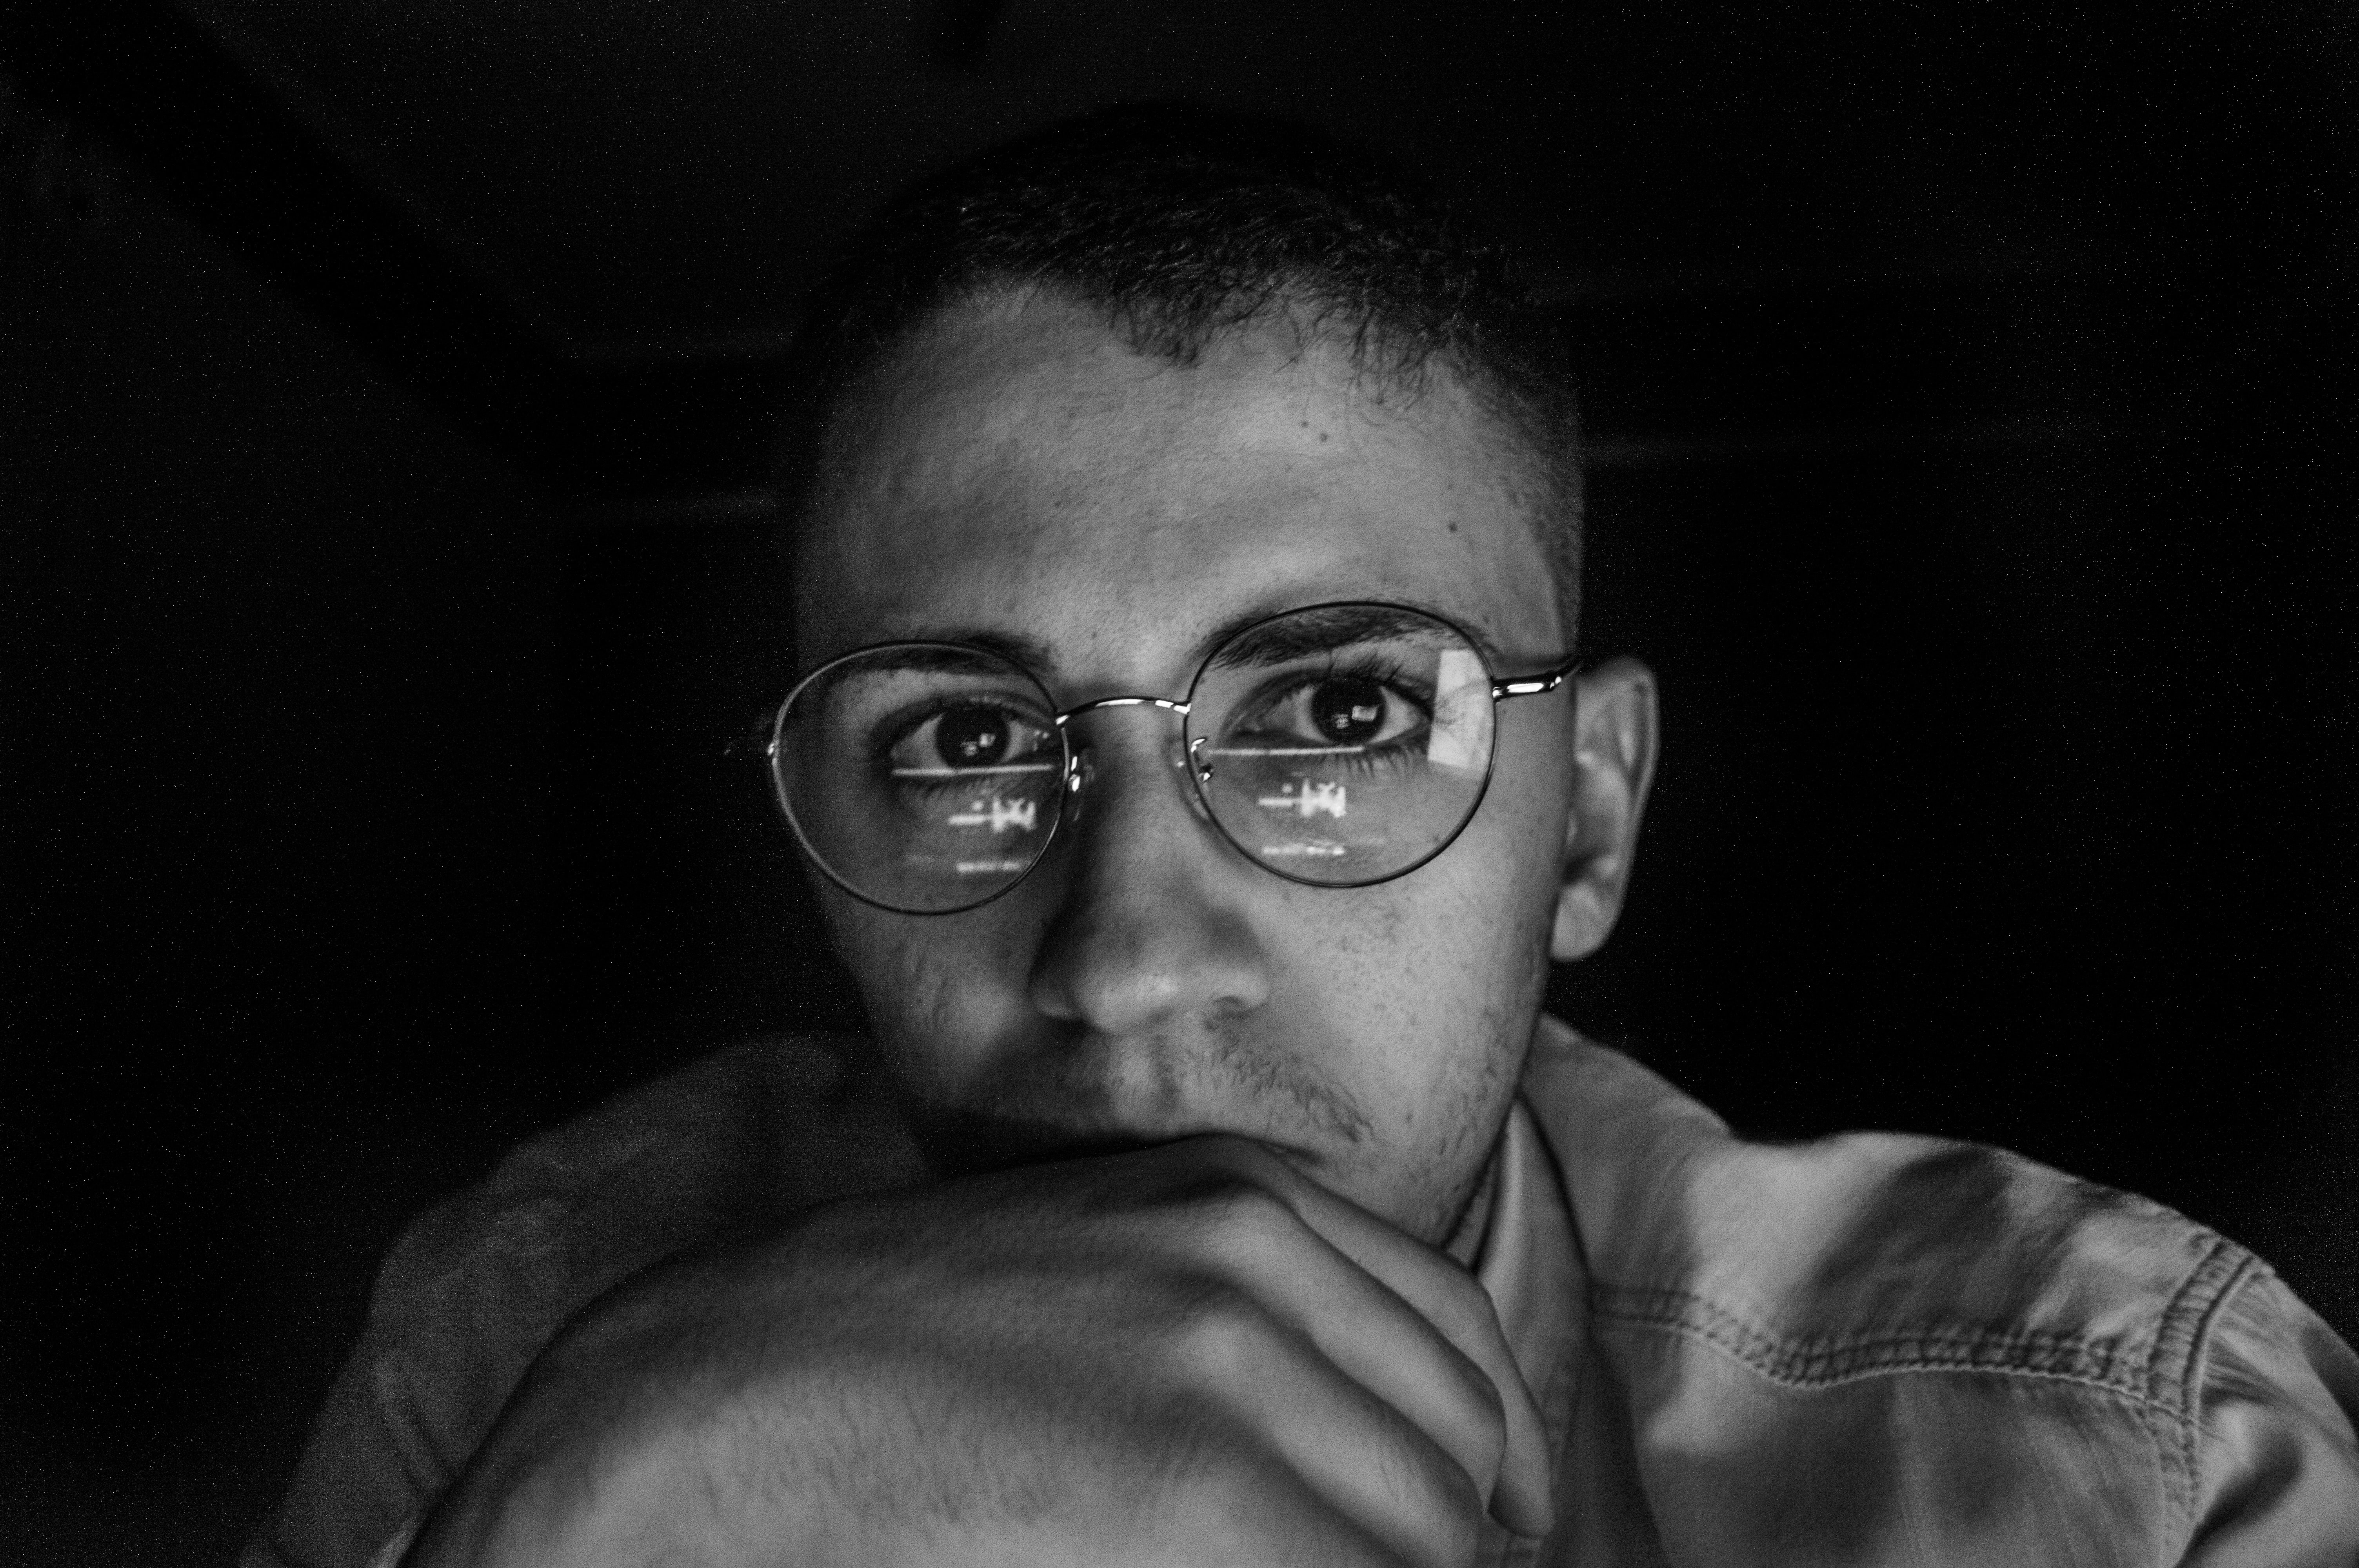 greyscale photo of man wearing eyeglasses